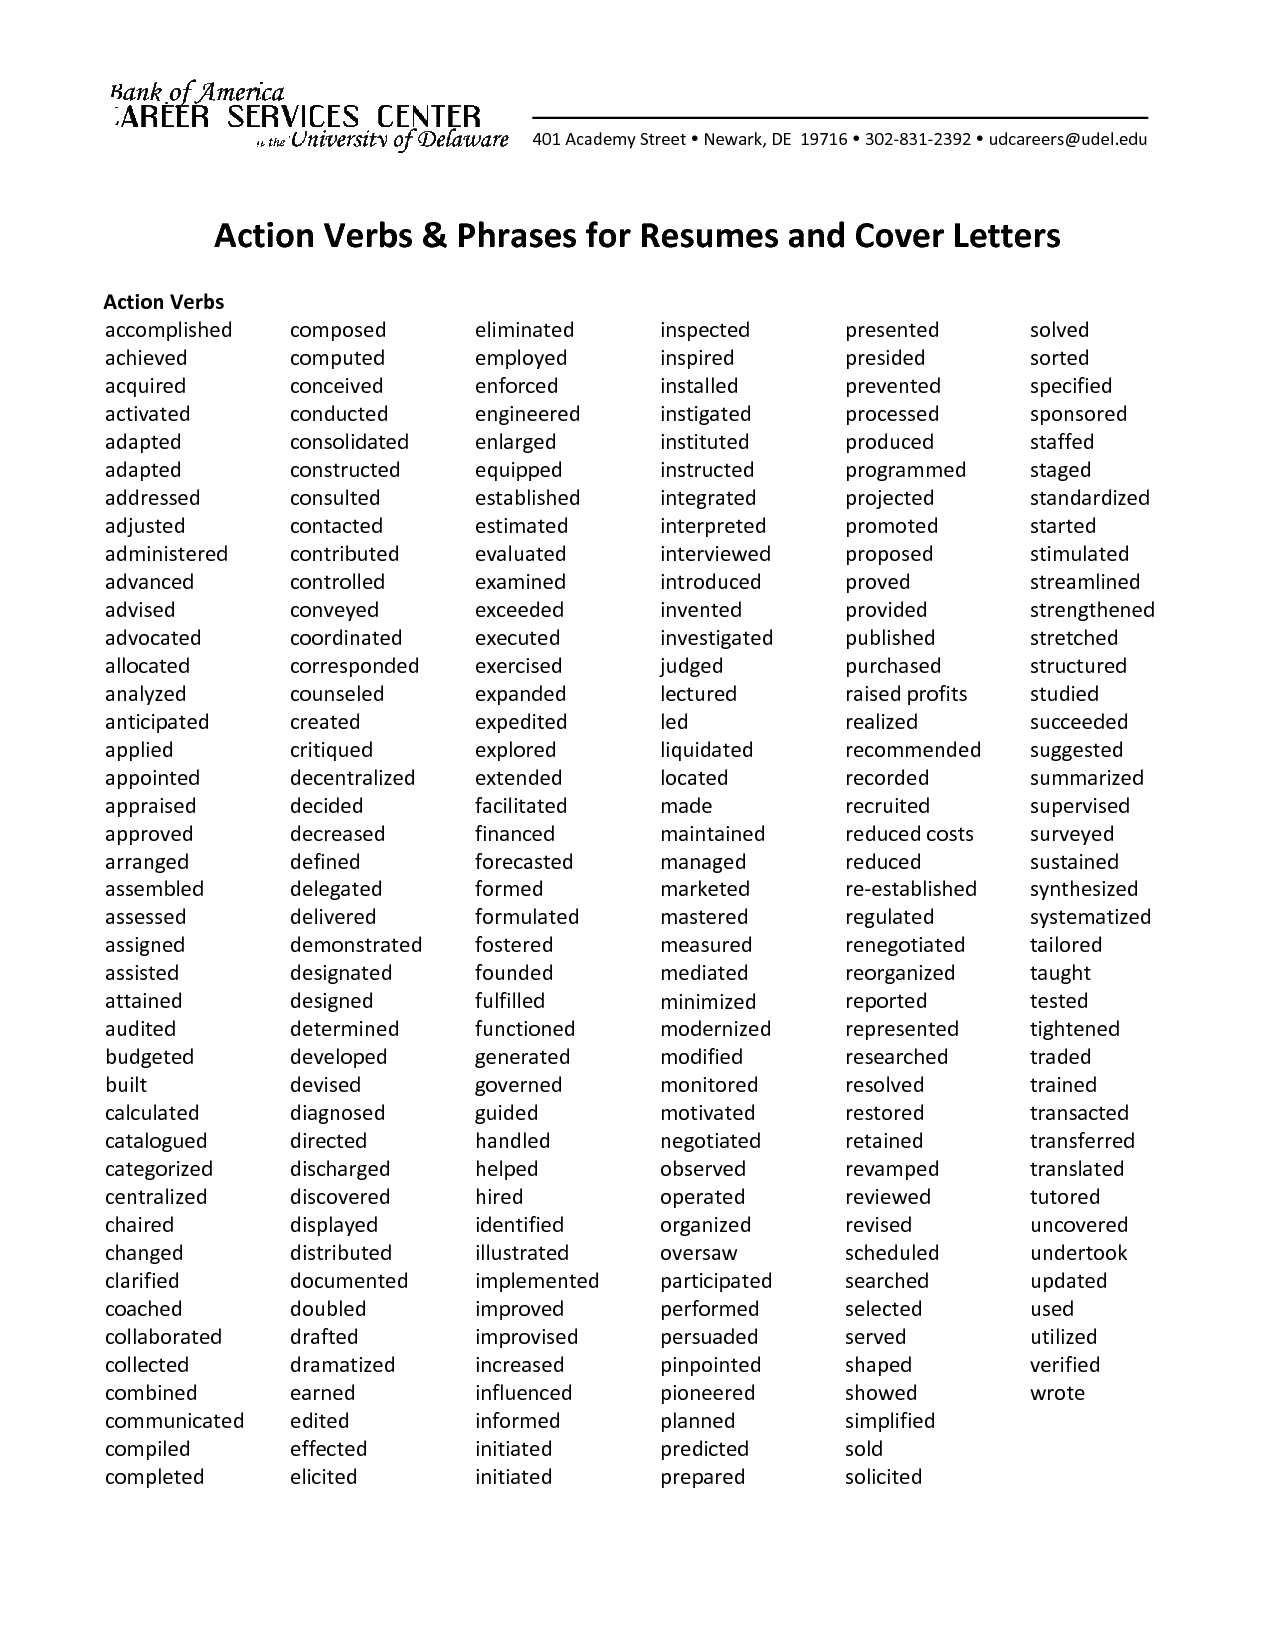 resume action words stanford cover letter templates resume action words stanford max weber stanford encyclopedia of philosophy action verbs for resume action verbs